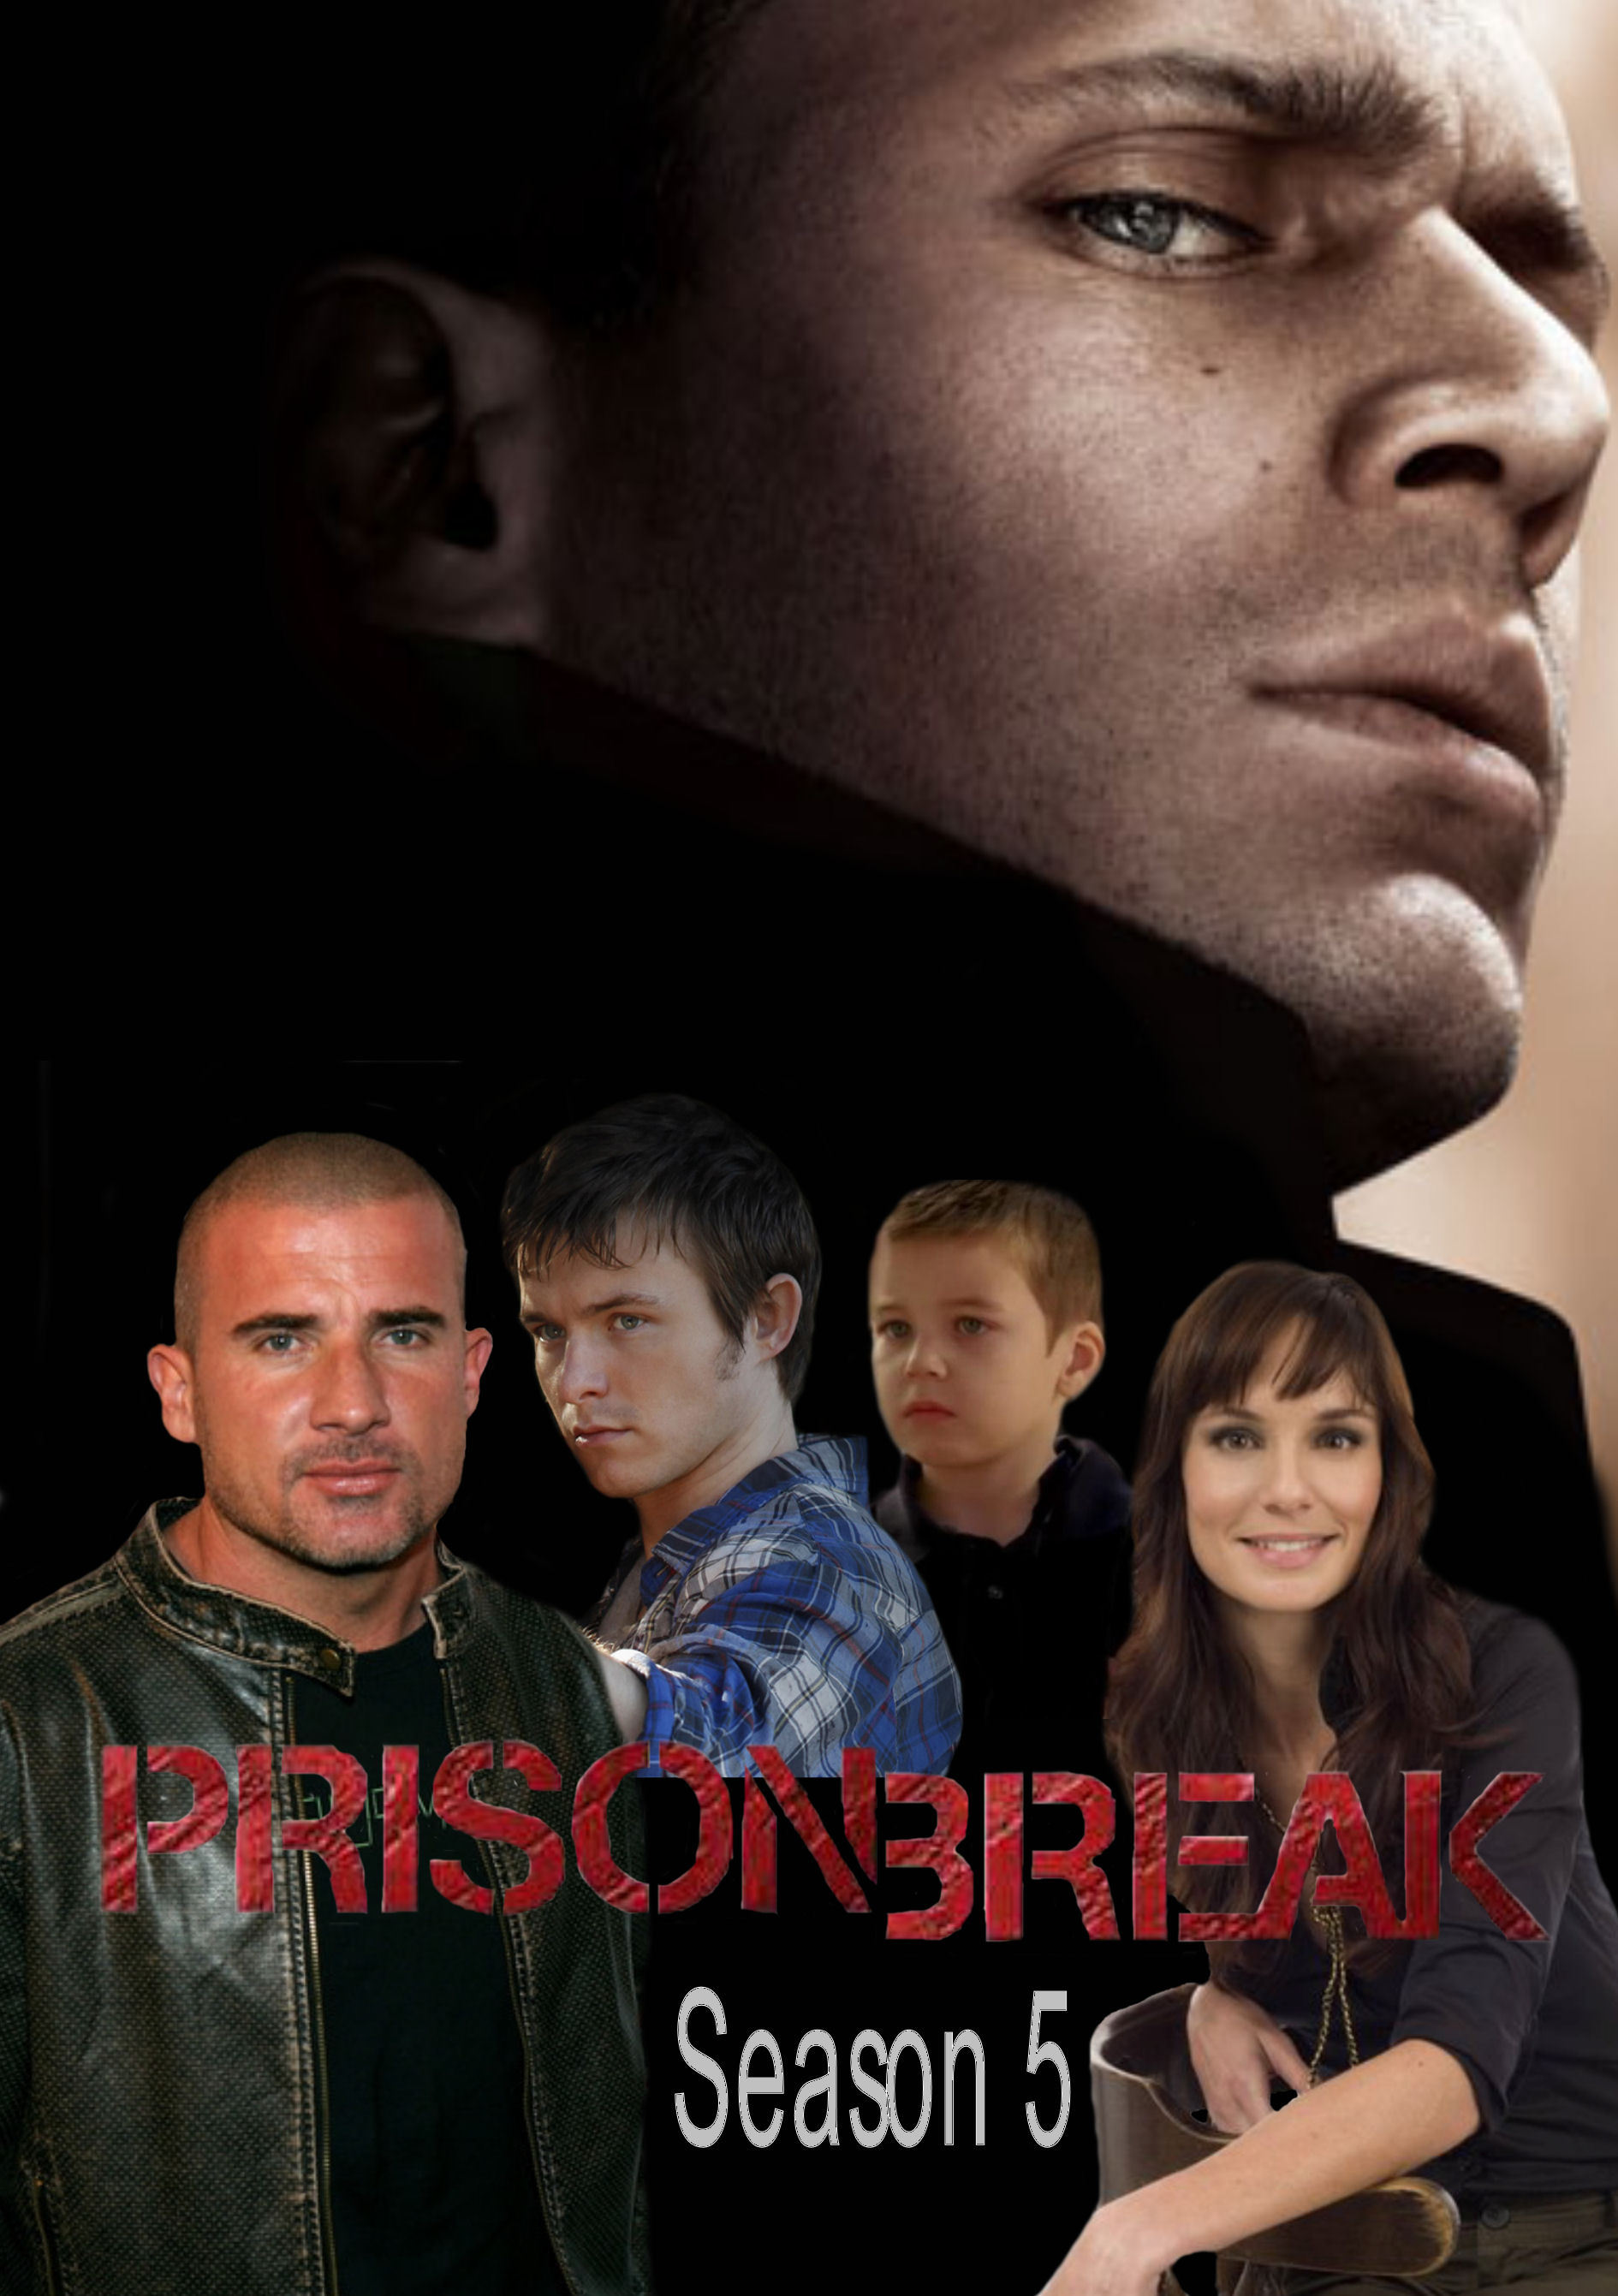 Prison Break Season 5 Episode 1 Streaming